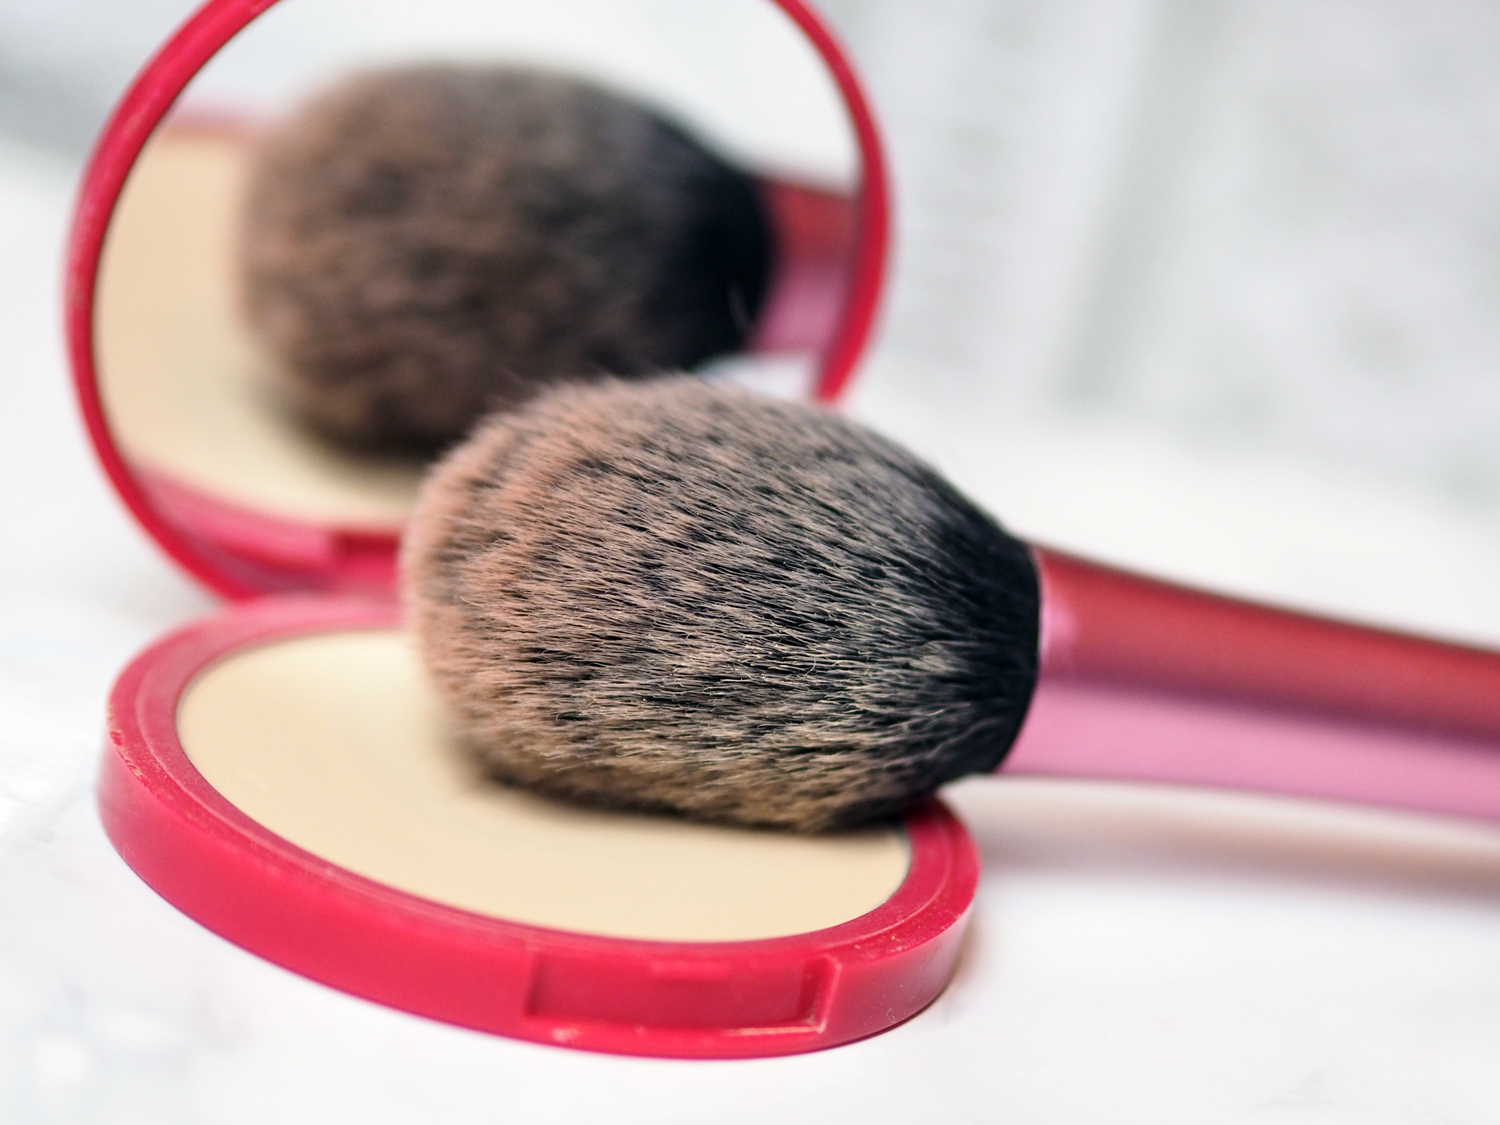 5 ways to set your makeup bourjois healthy balance